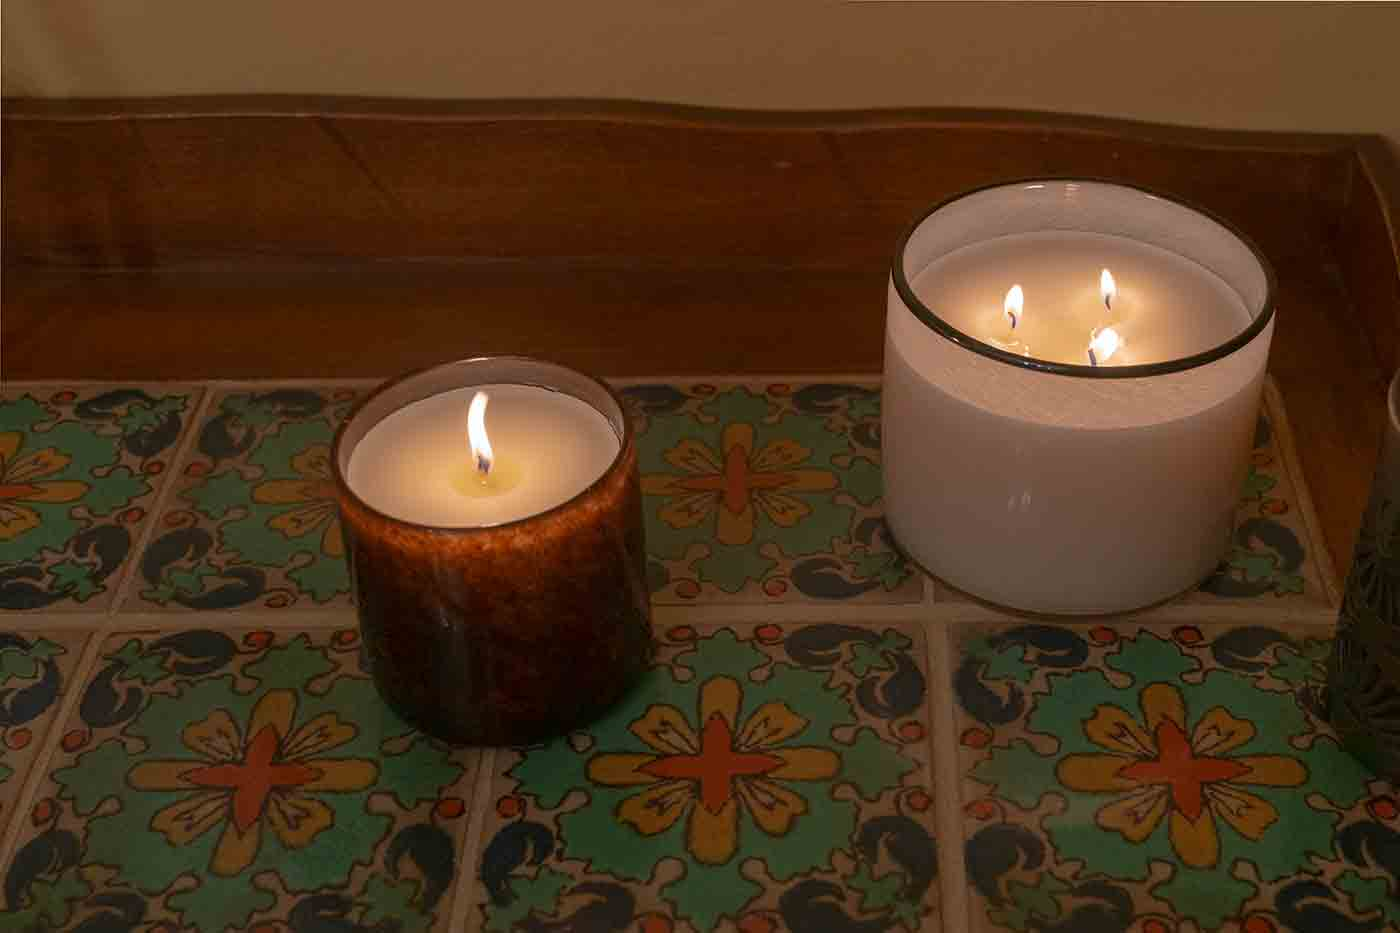 Redwood and Champaign LAFCO candles on a vintage tile sideboard